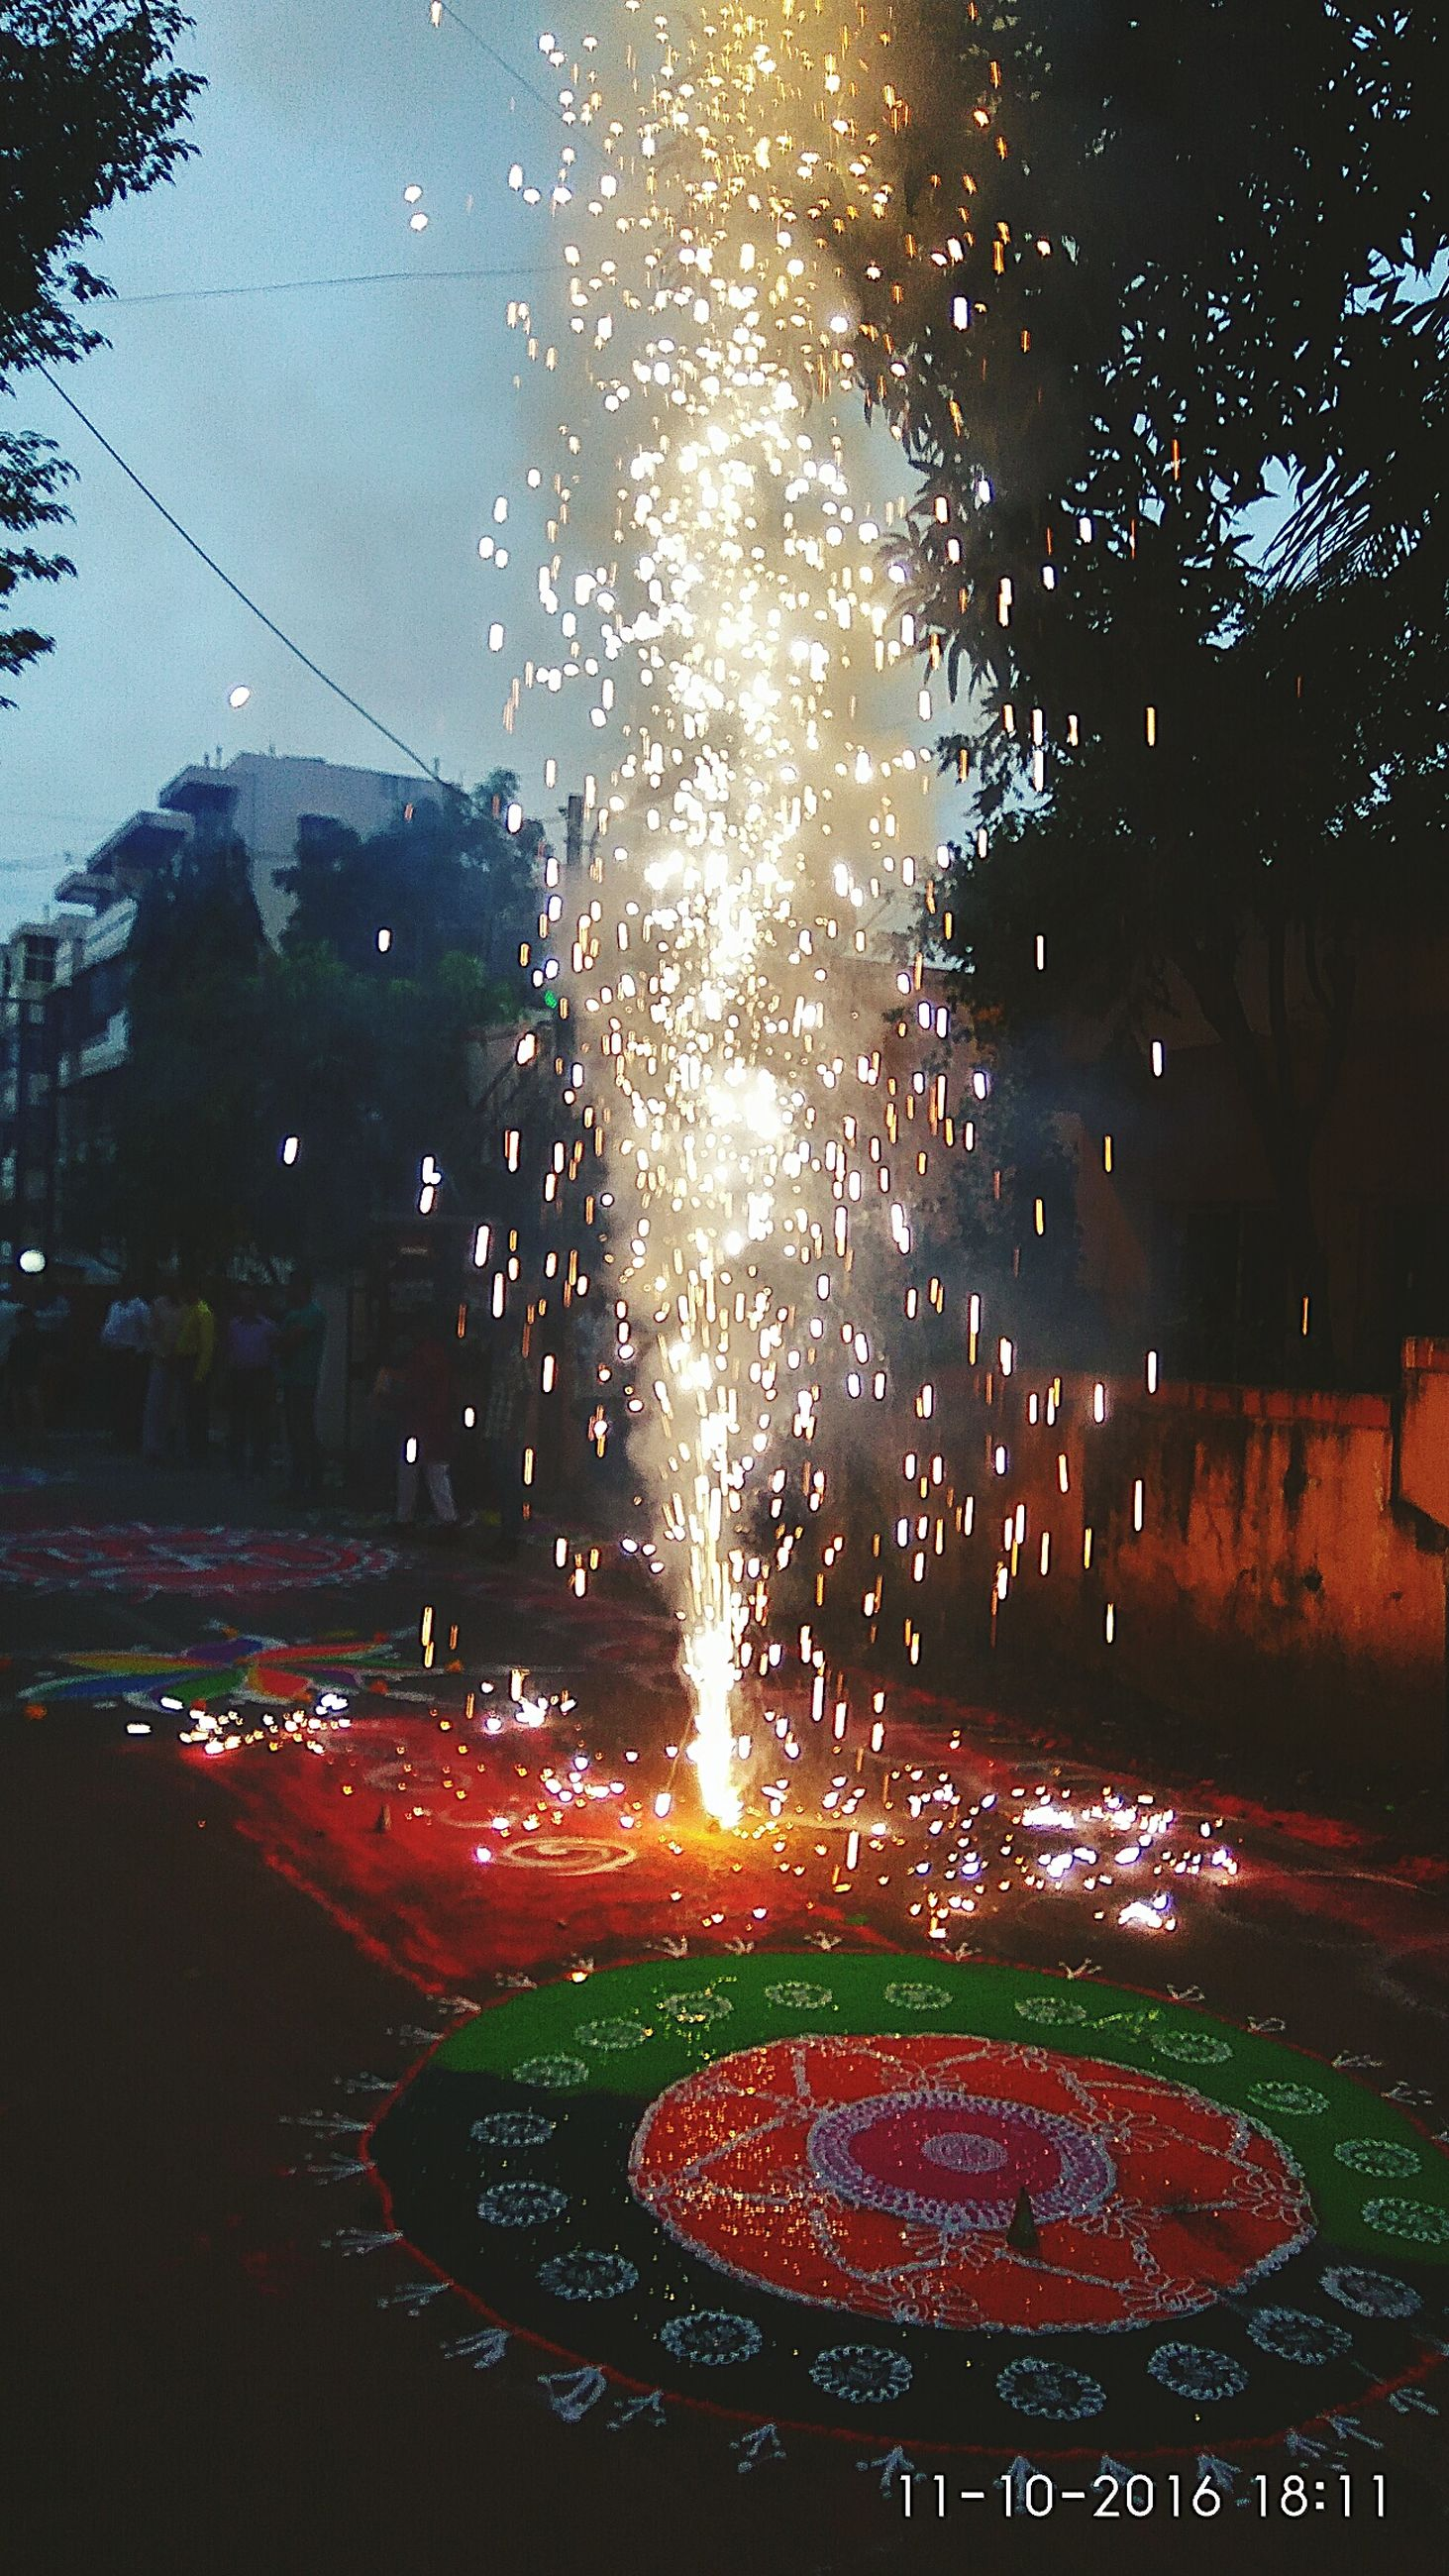 motion, long exposure, celebration, glowing, night, road, exploding, illuminated, firework display, light trail, blurred motion, sparks, event, red, firework - man made object, vibrant color, outdoors, entertainment, city life, sky, multi colored, tail light, lit, no people